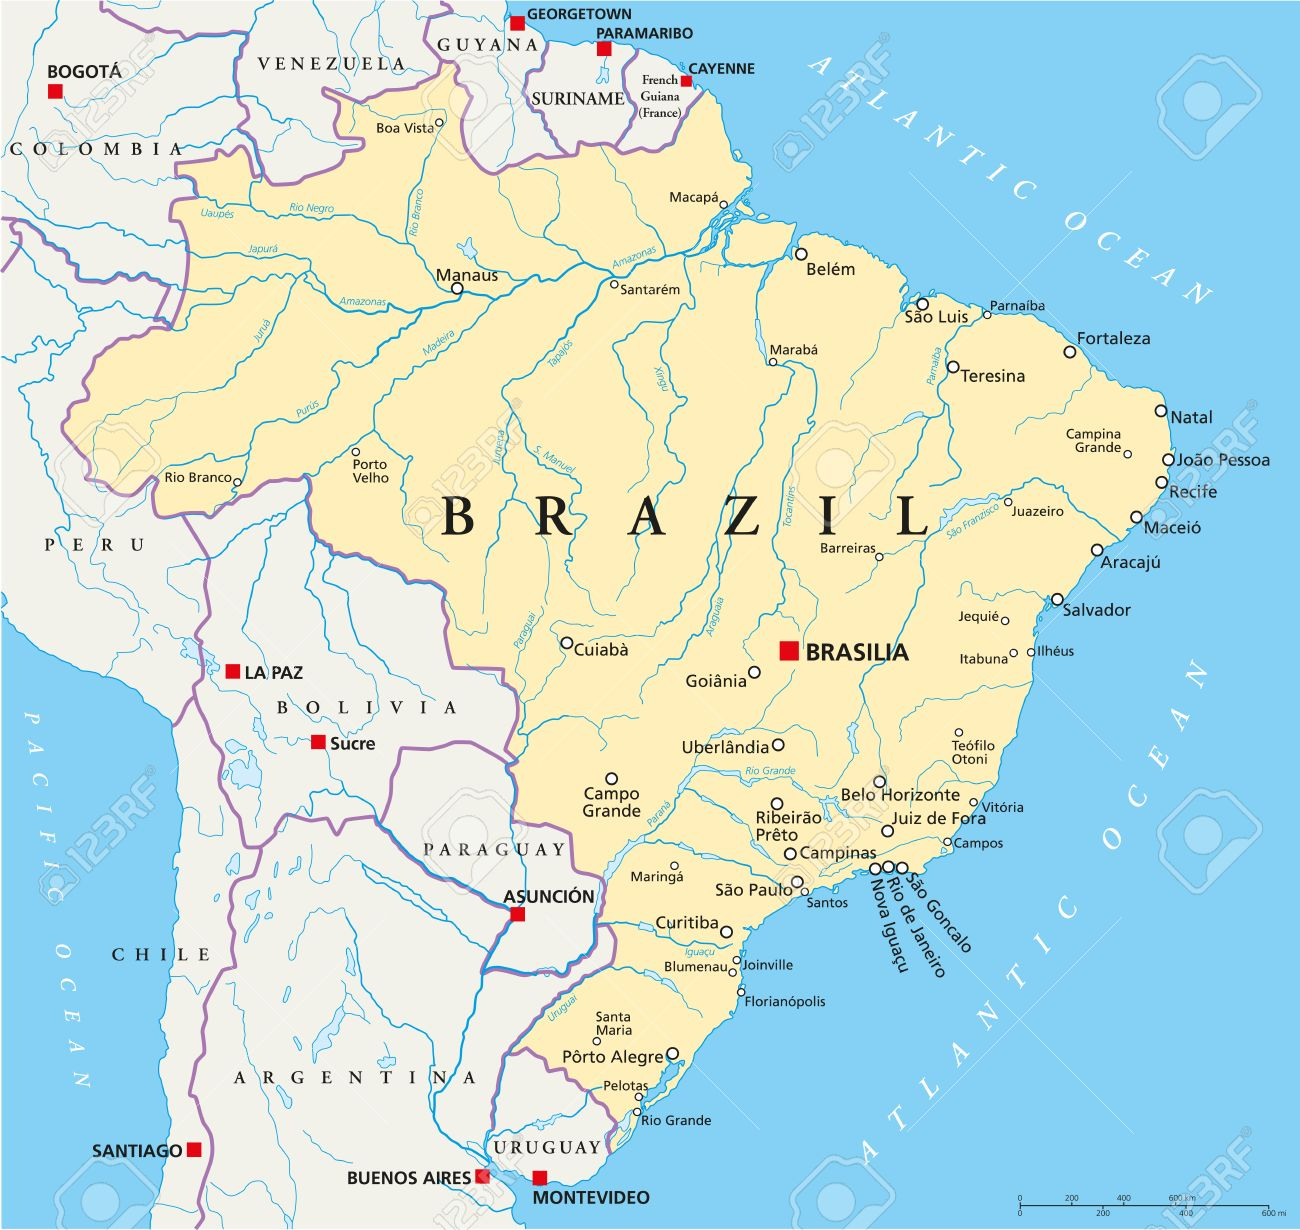 Brazil Political Map With Capital Brasilia National Borders